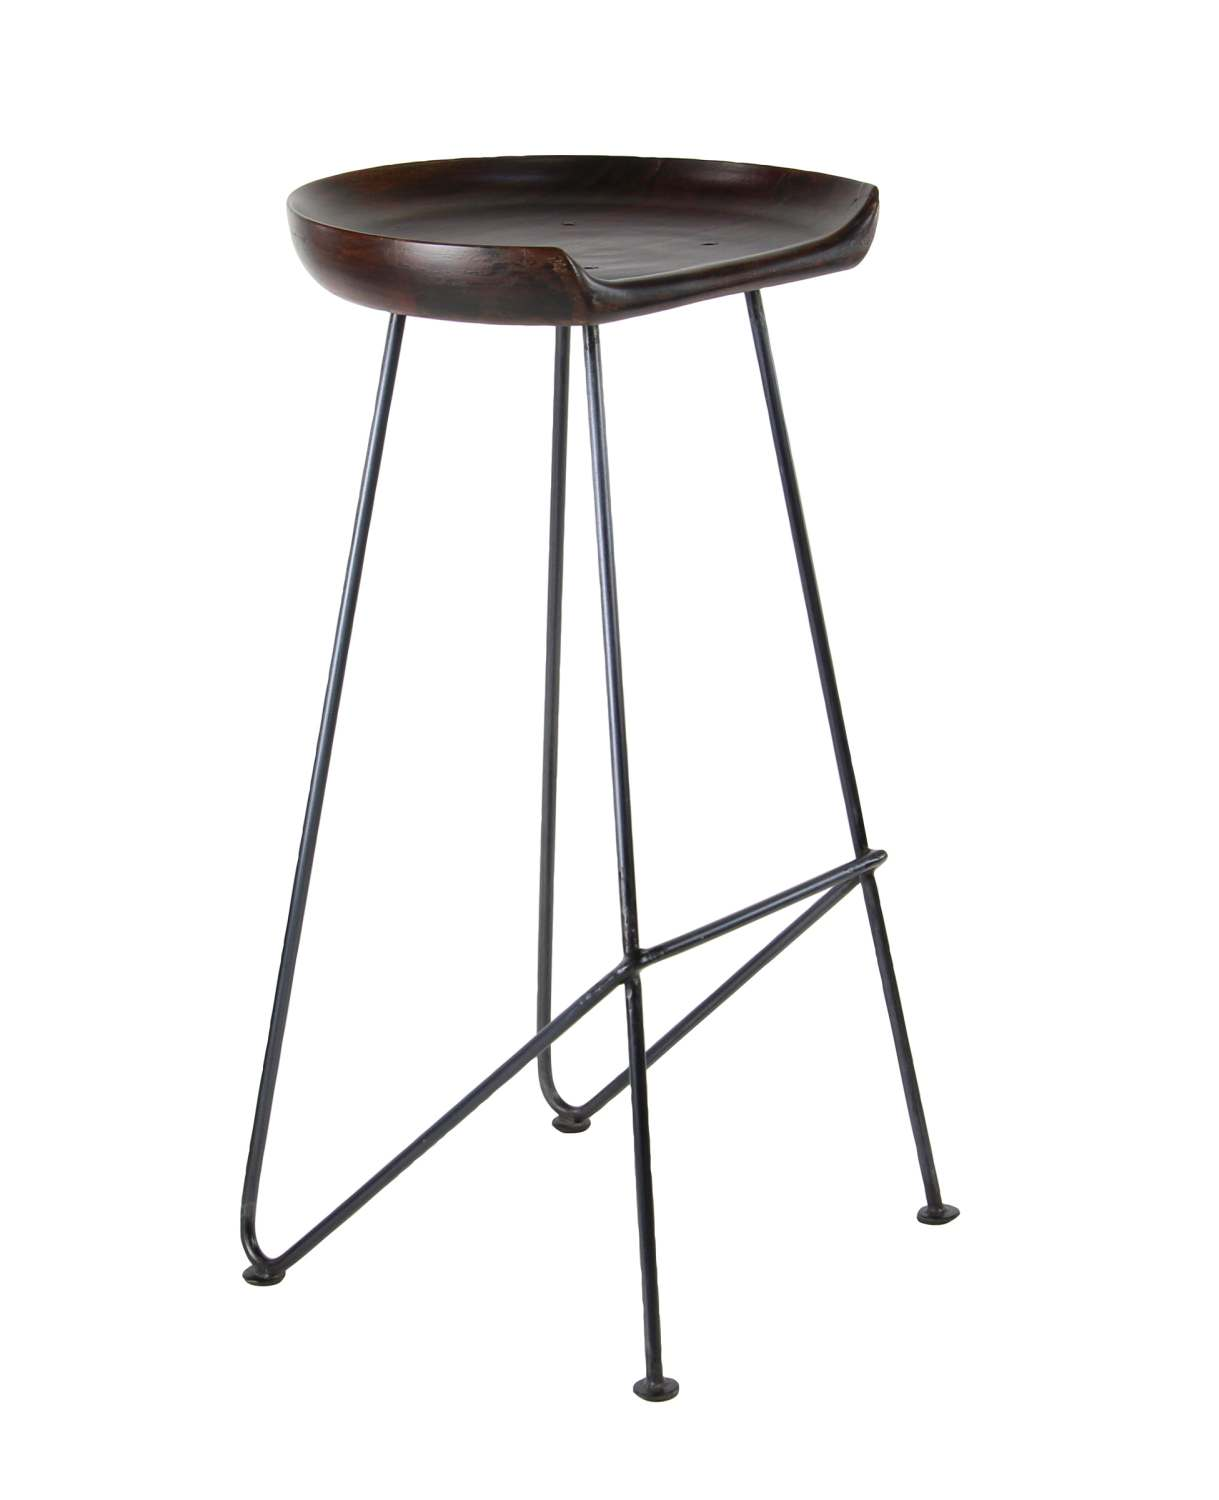 Pleasing 32 X 17 Inch Wood And Metal Bar Stool Uwap Interior Chair Design Uwaporg